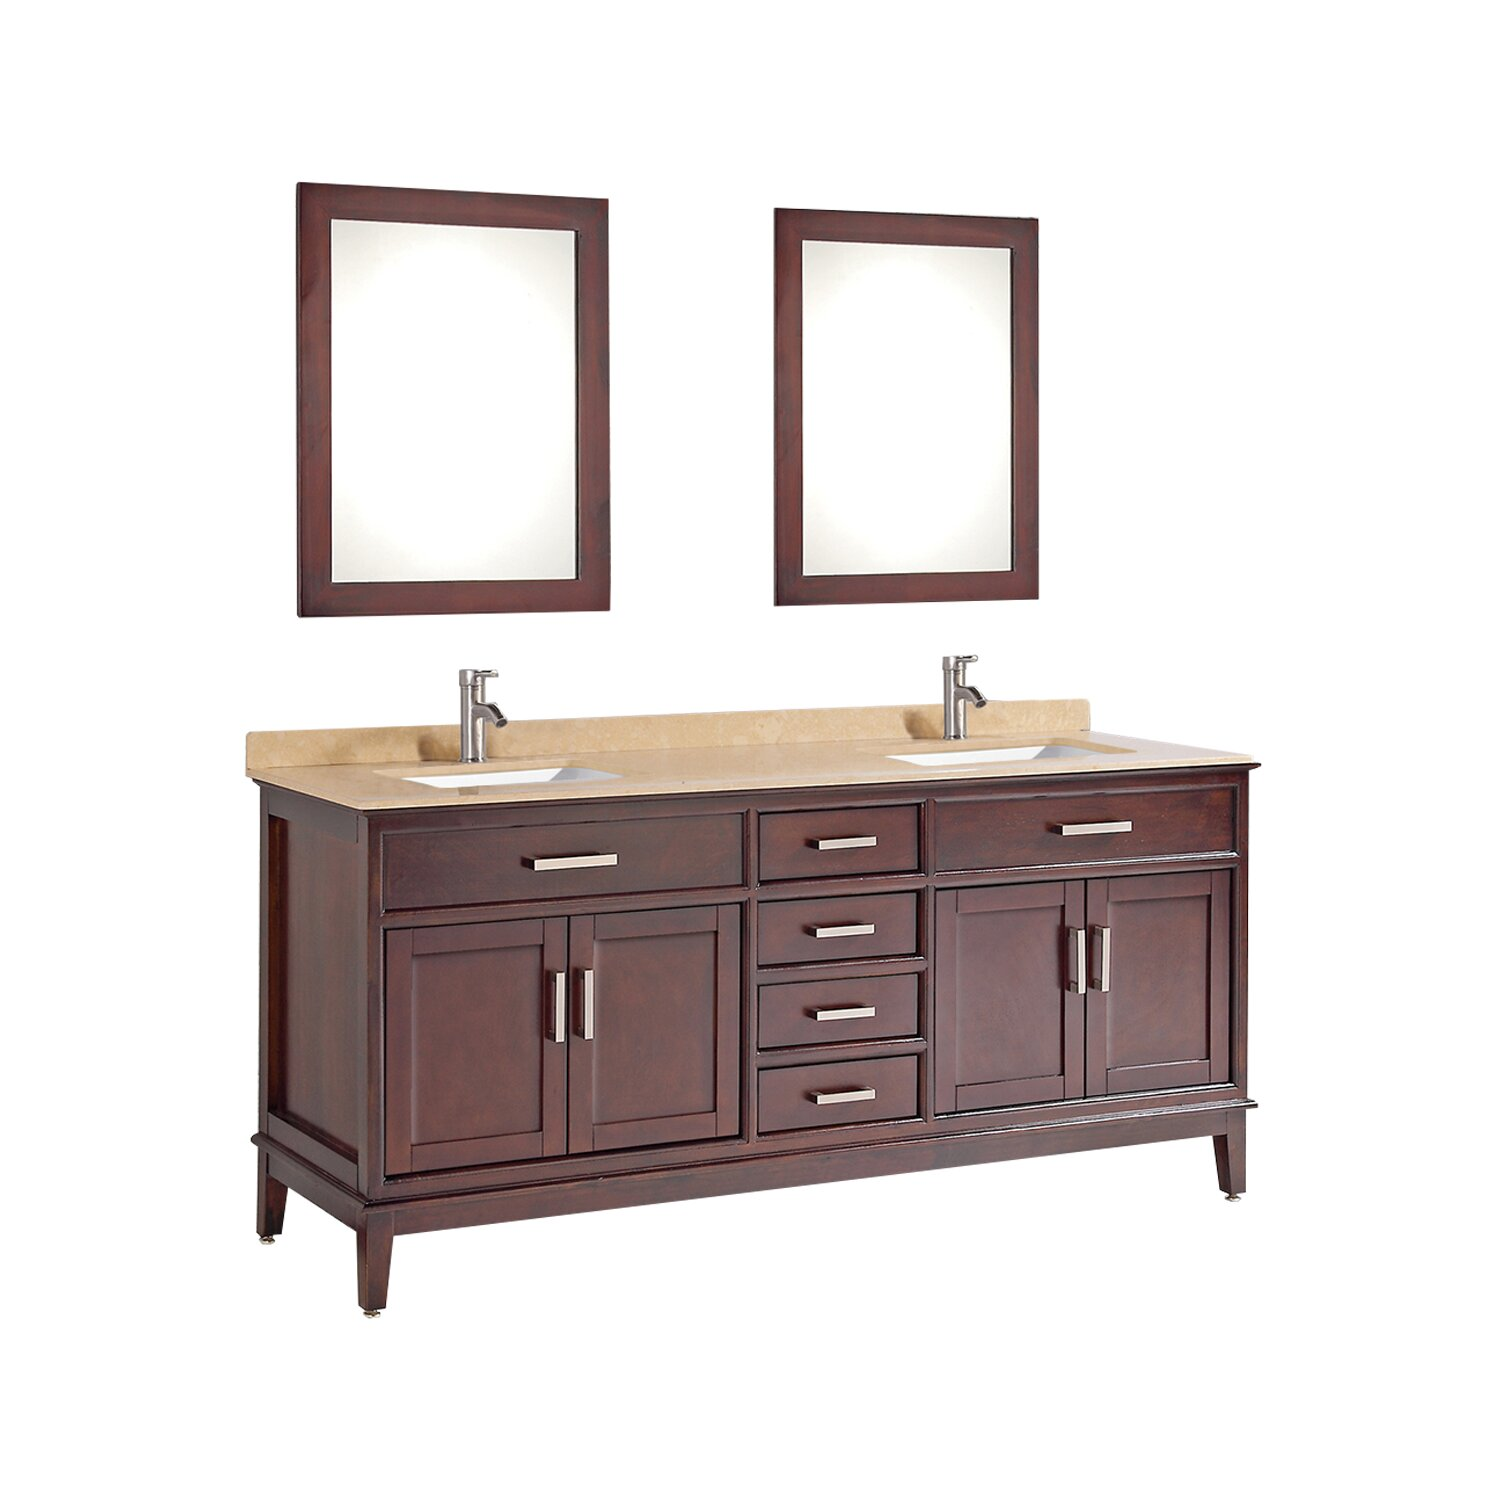 Mtdvanities Sierra 59 8 Double Bathroom Vanity Set With Mirror And Faucet Wayfair